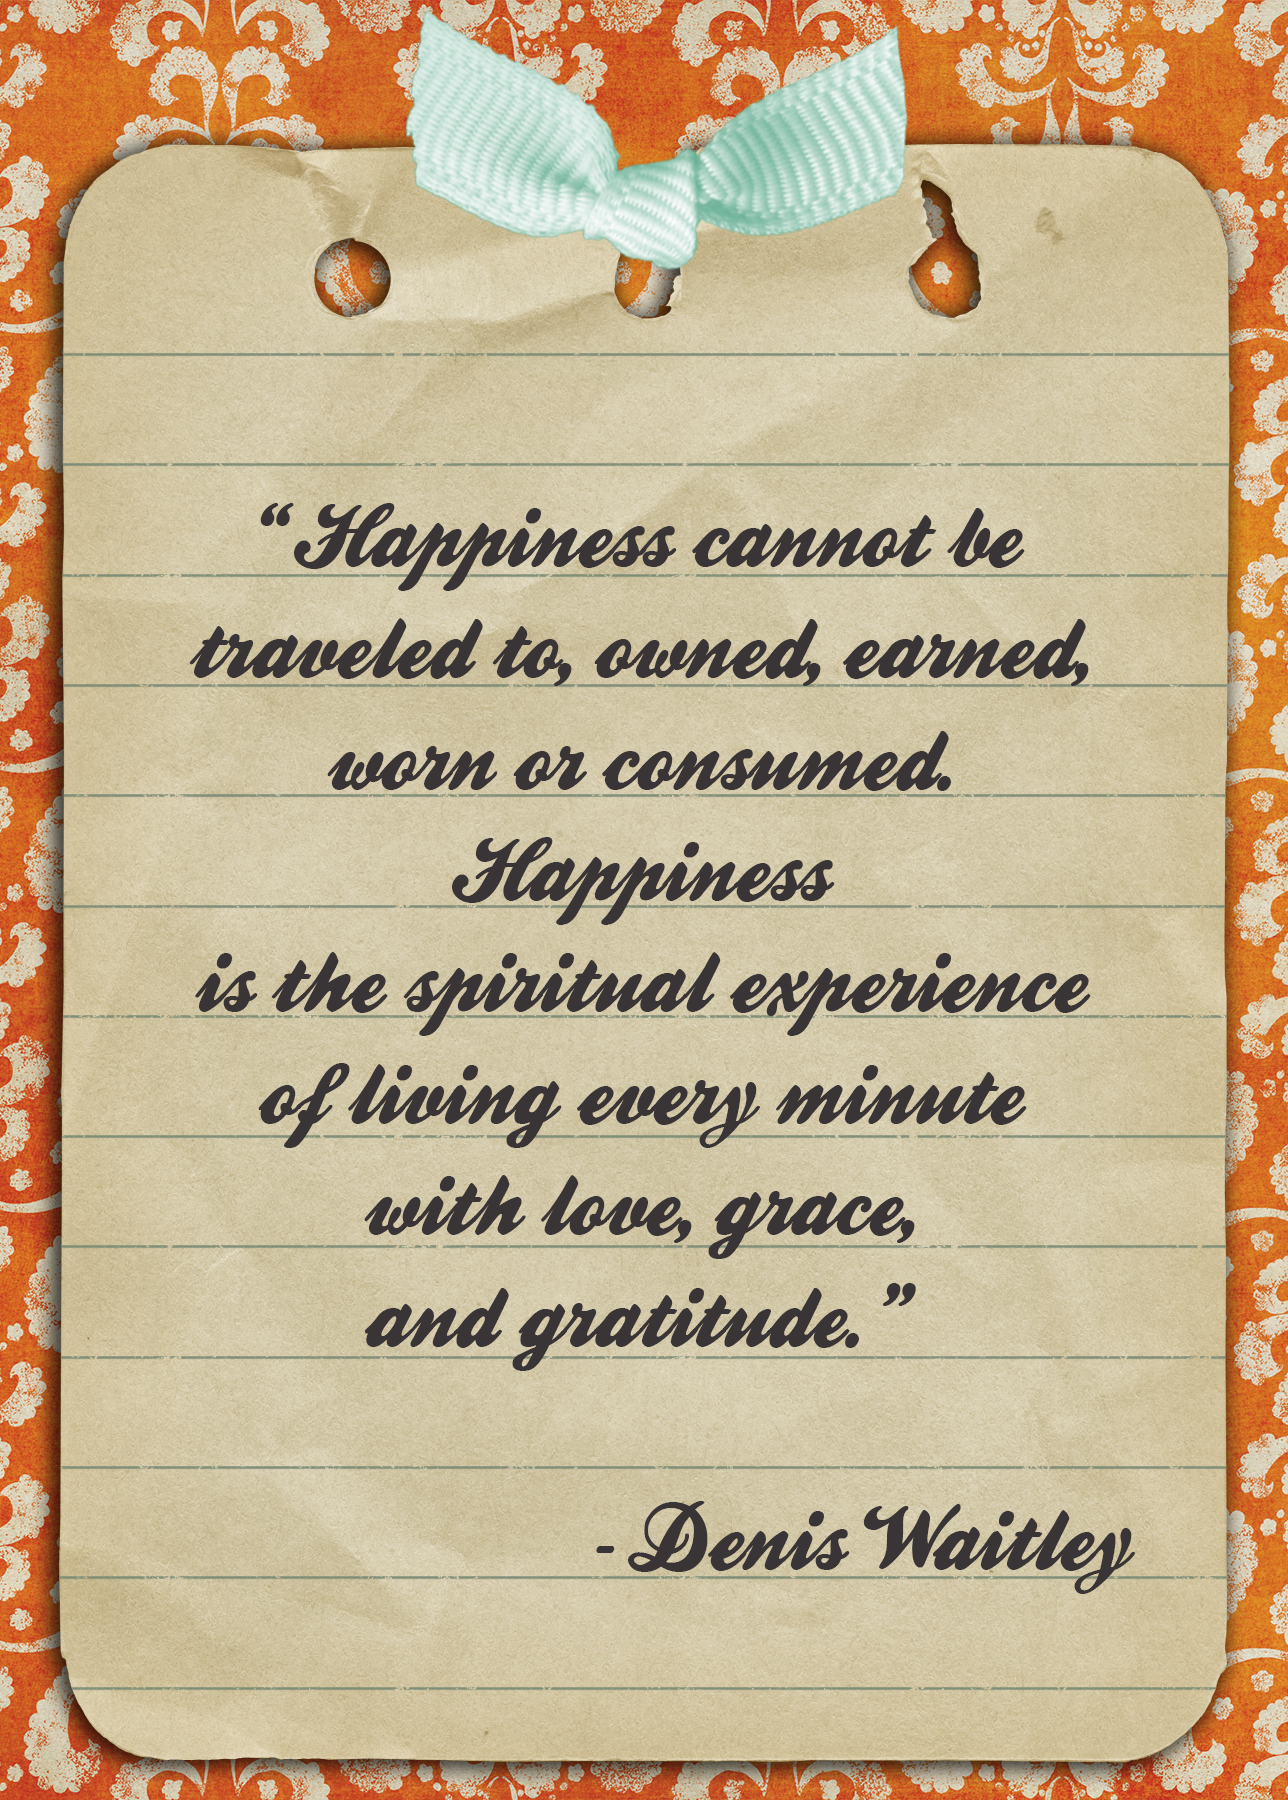 Quotes About Love And Happiness: Disney Quotes About Happiness. QuotesGram